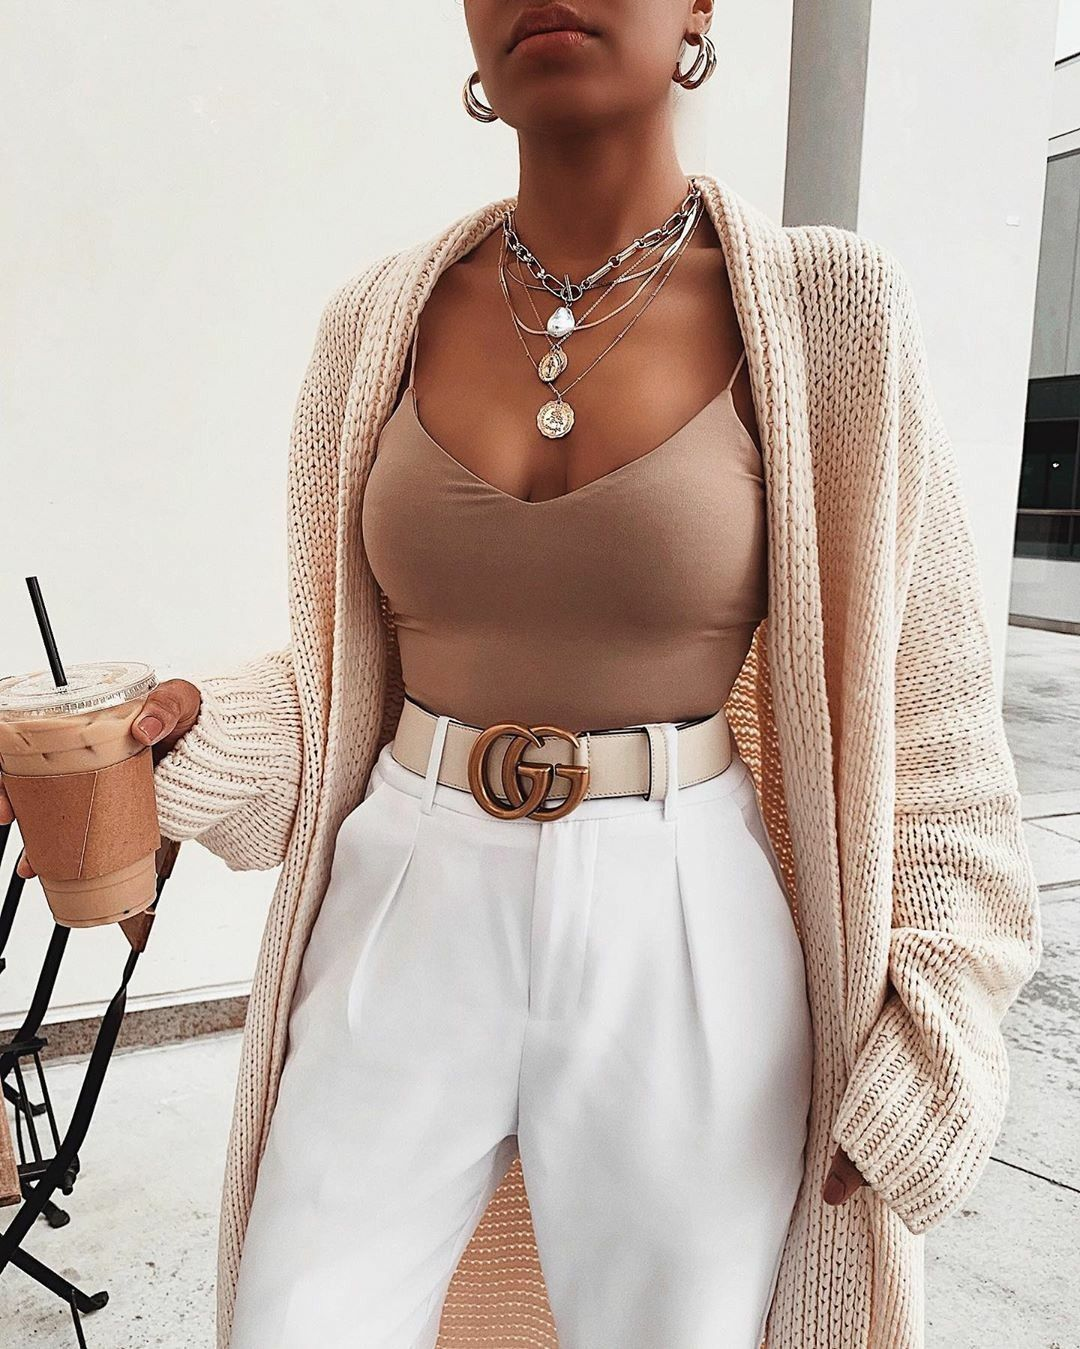 New Cute Outfits and Cool Fashion Look Ideas Of Popular Wear #outfitgoals